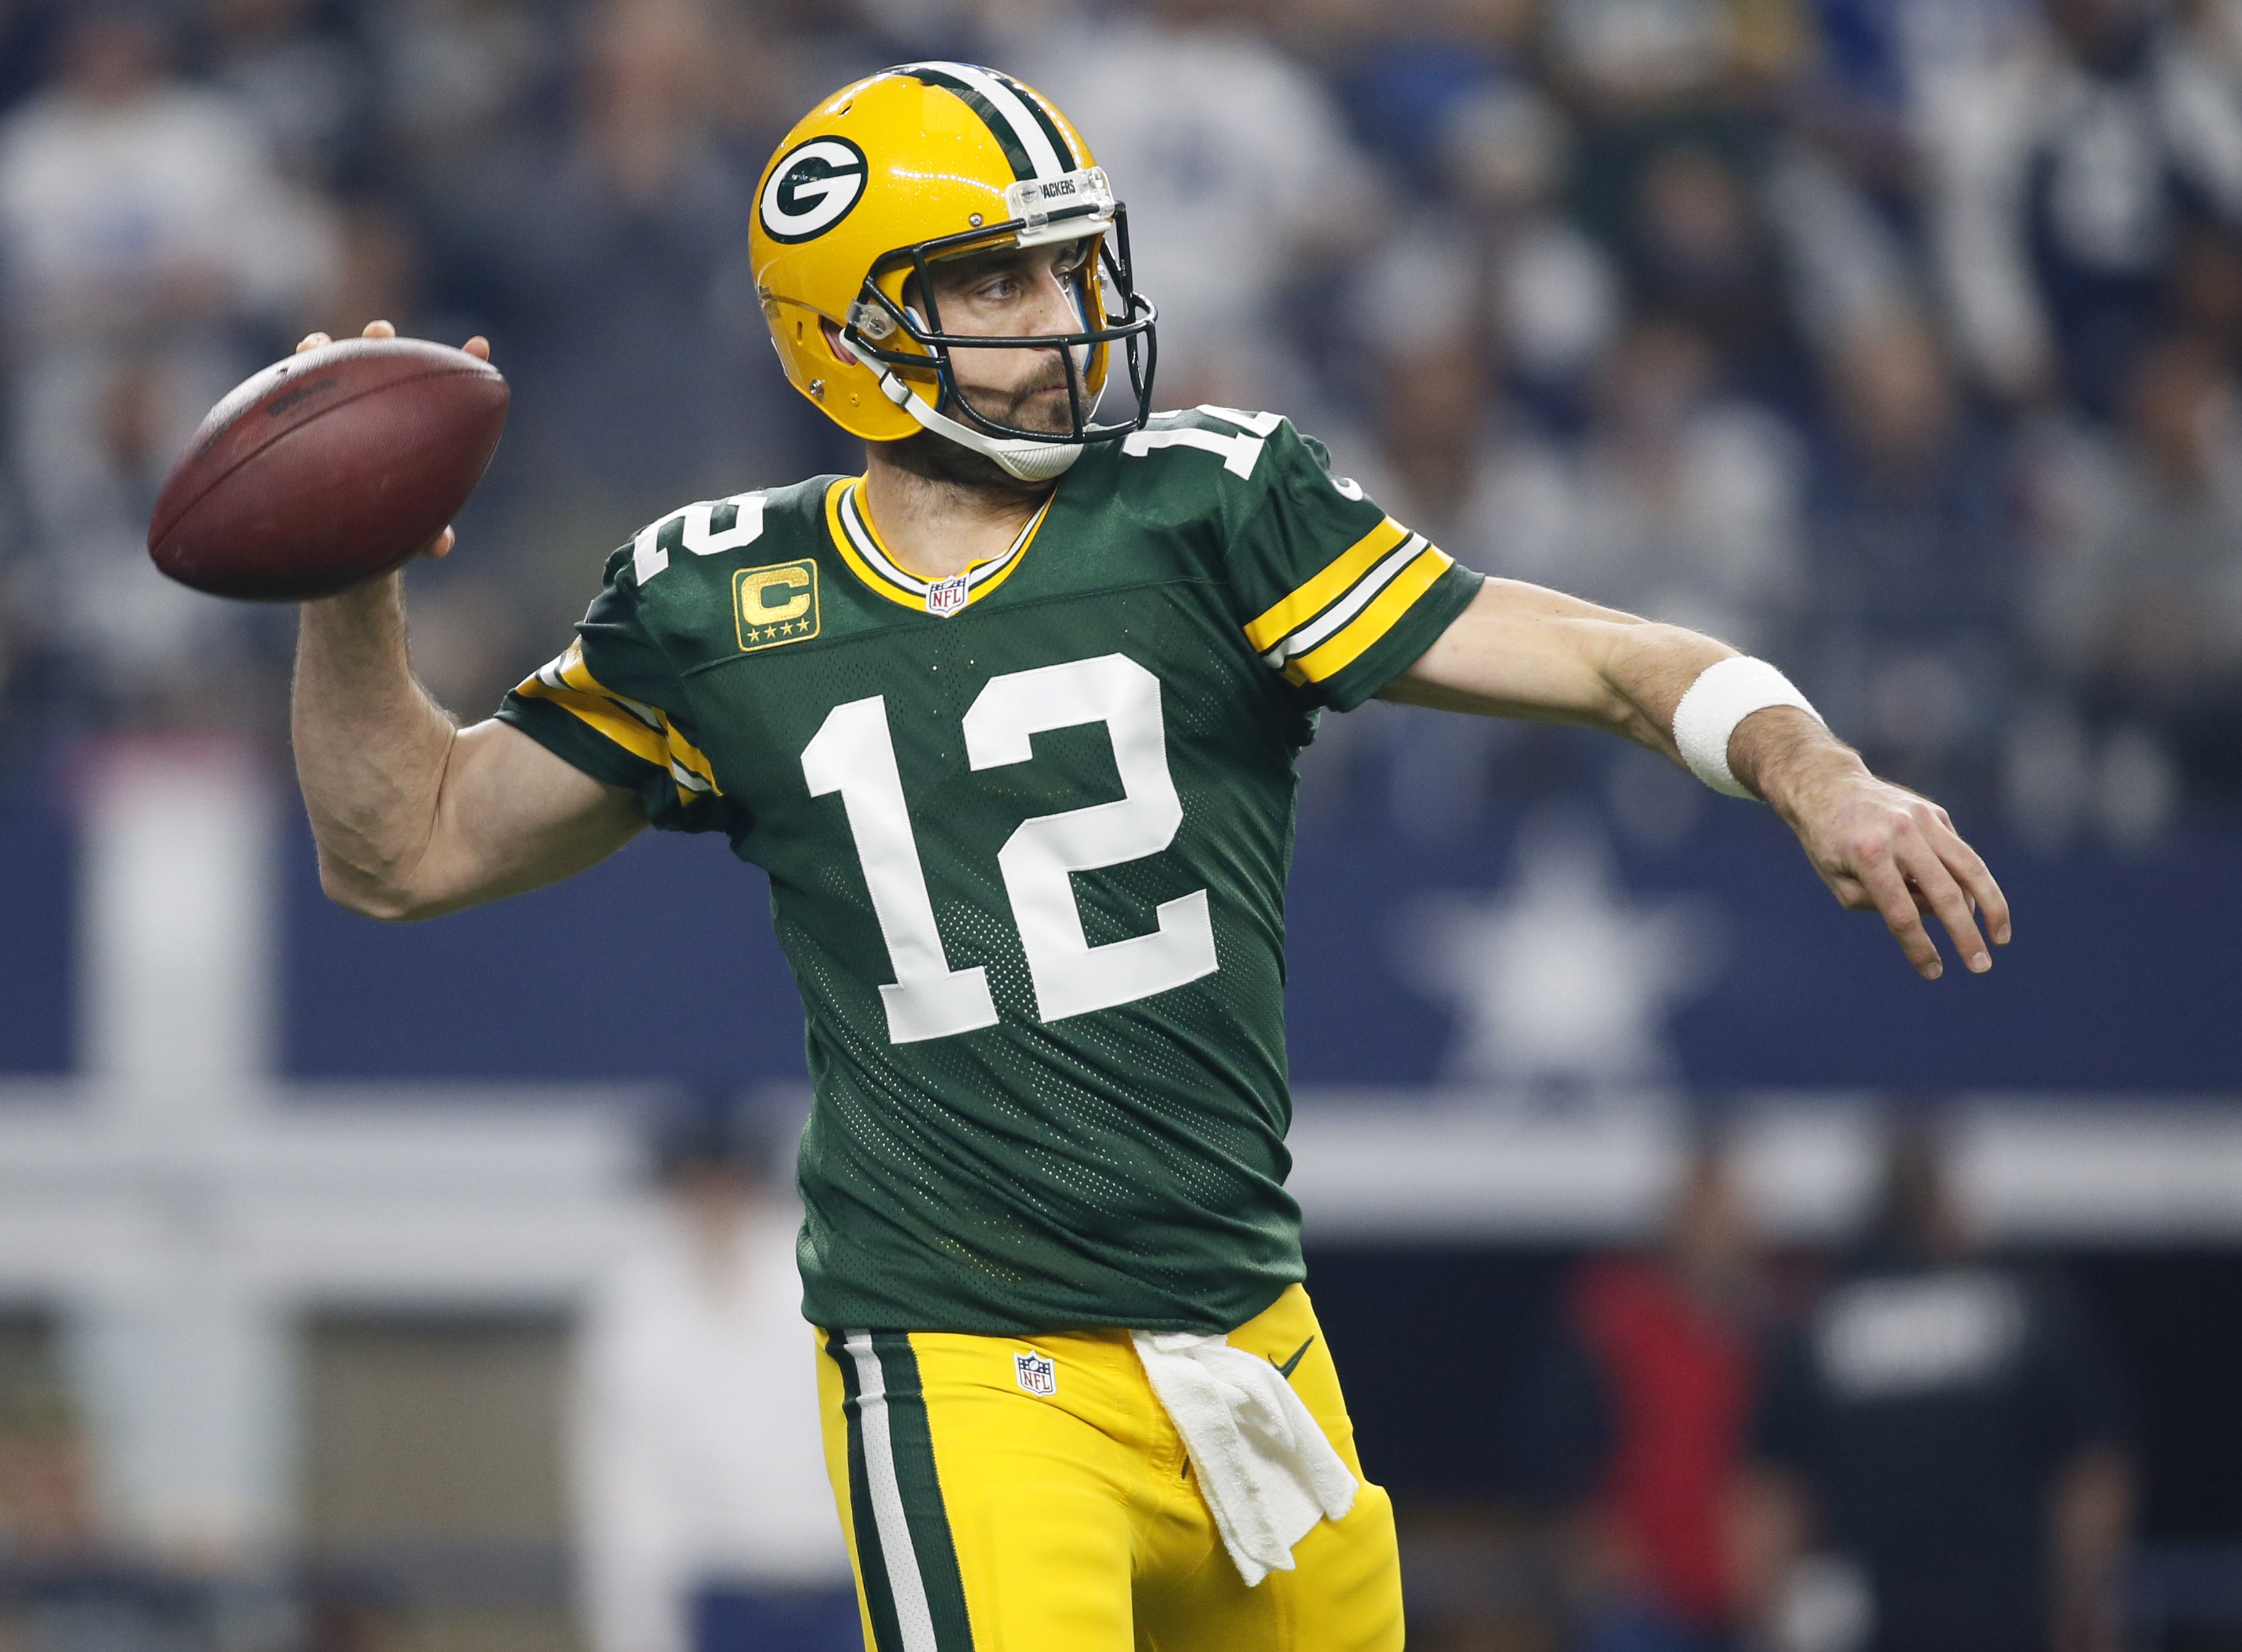 9812072-nfl-nfc-divisional-green-bay-packers-at-dallas-cowboys